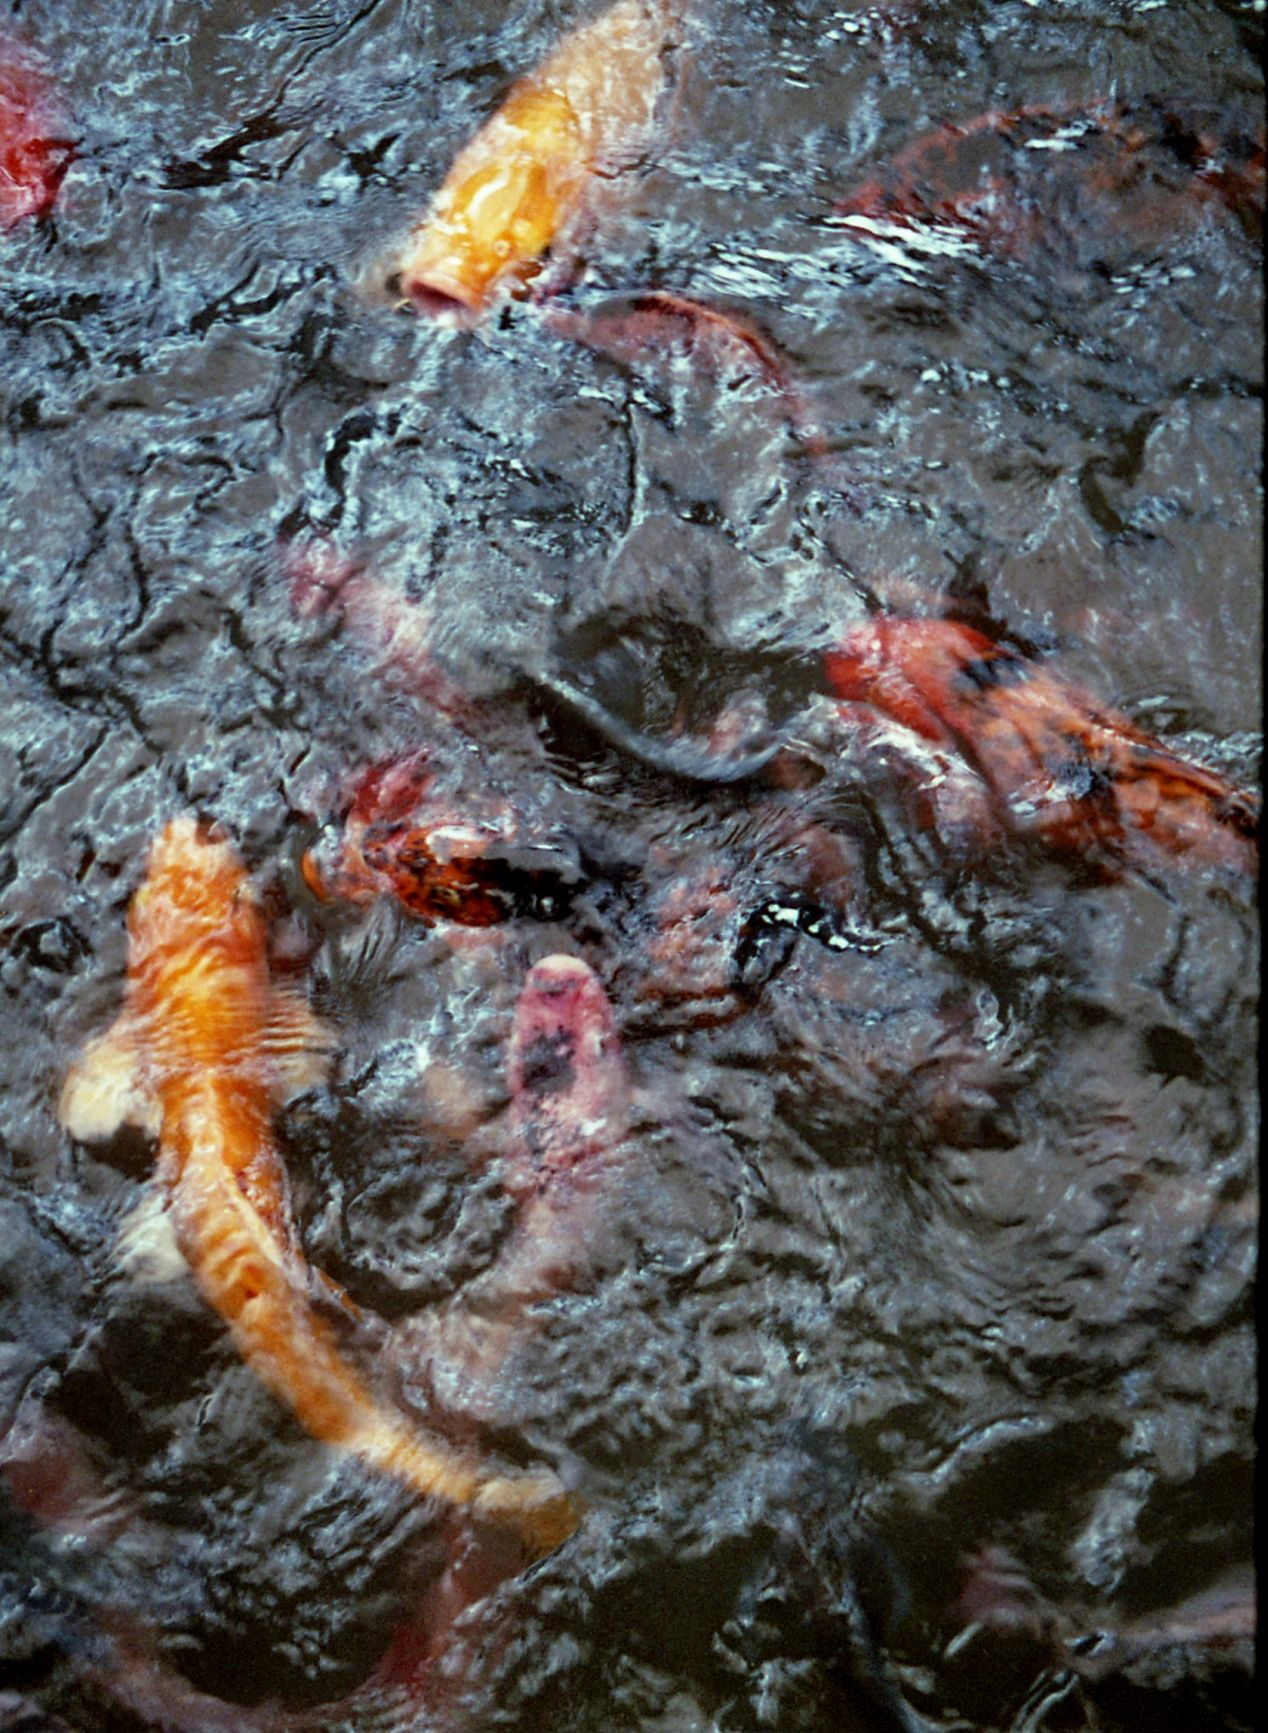 Koi Fish: One of the first shots I took with the Ricoh Caddy.  Fuji Color Industrial 400.